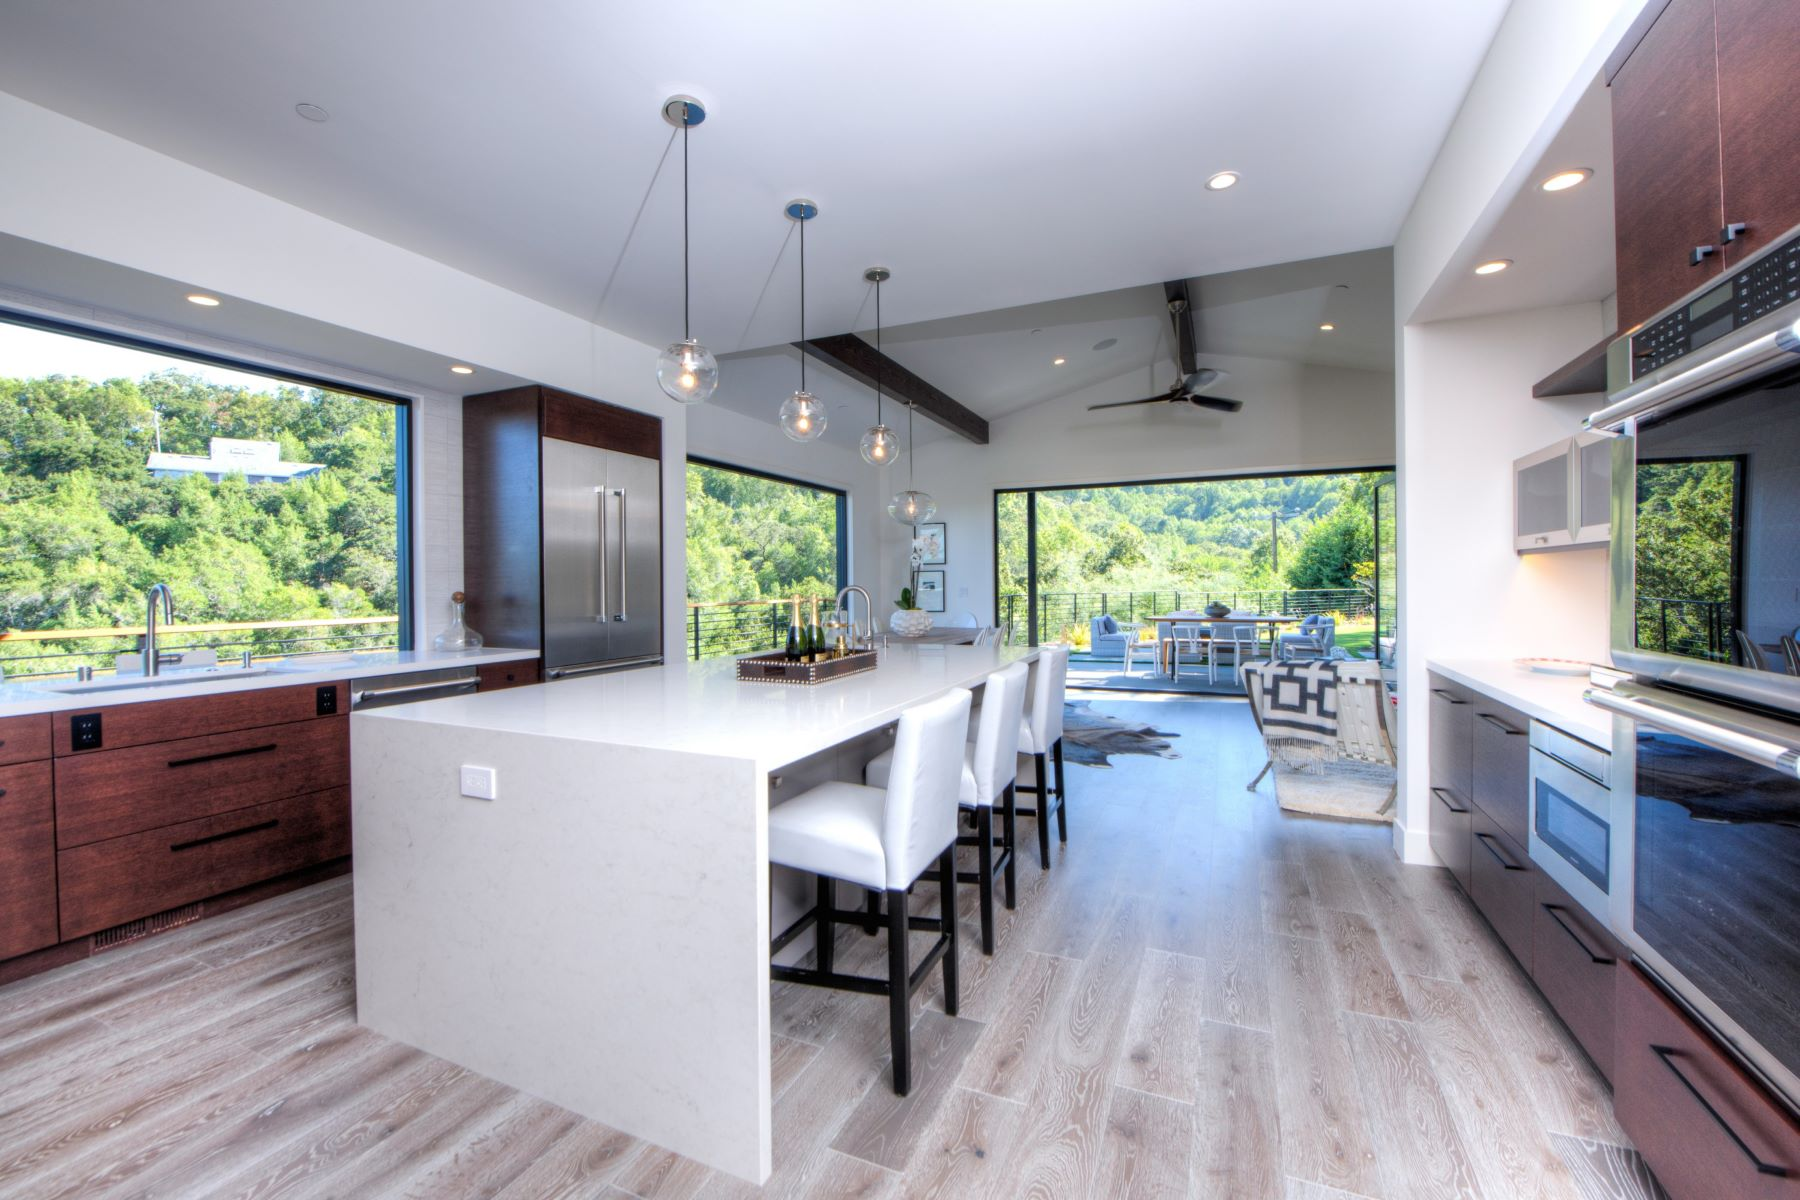 Single Family Home for Sale at Brand New Construction 476 Laurel Avenue San Anselmo, California 94960 United States